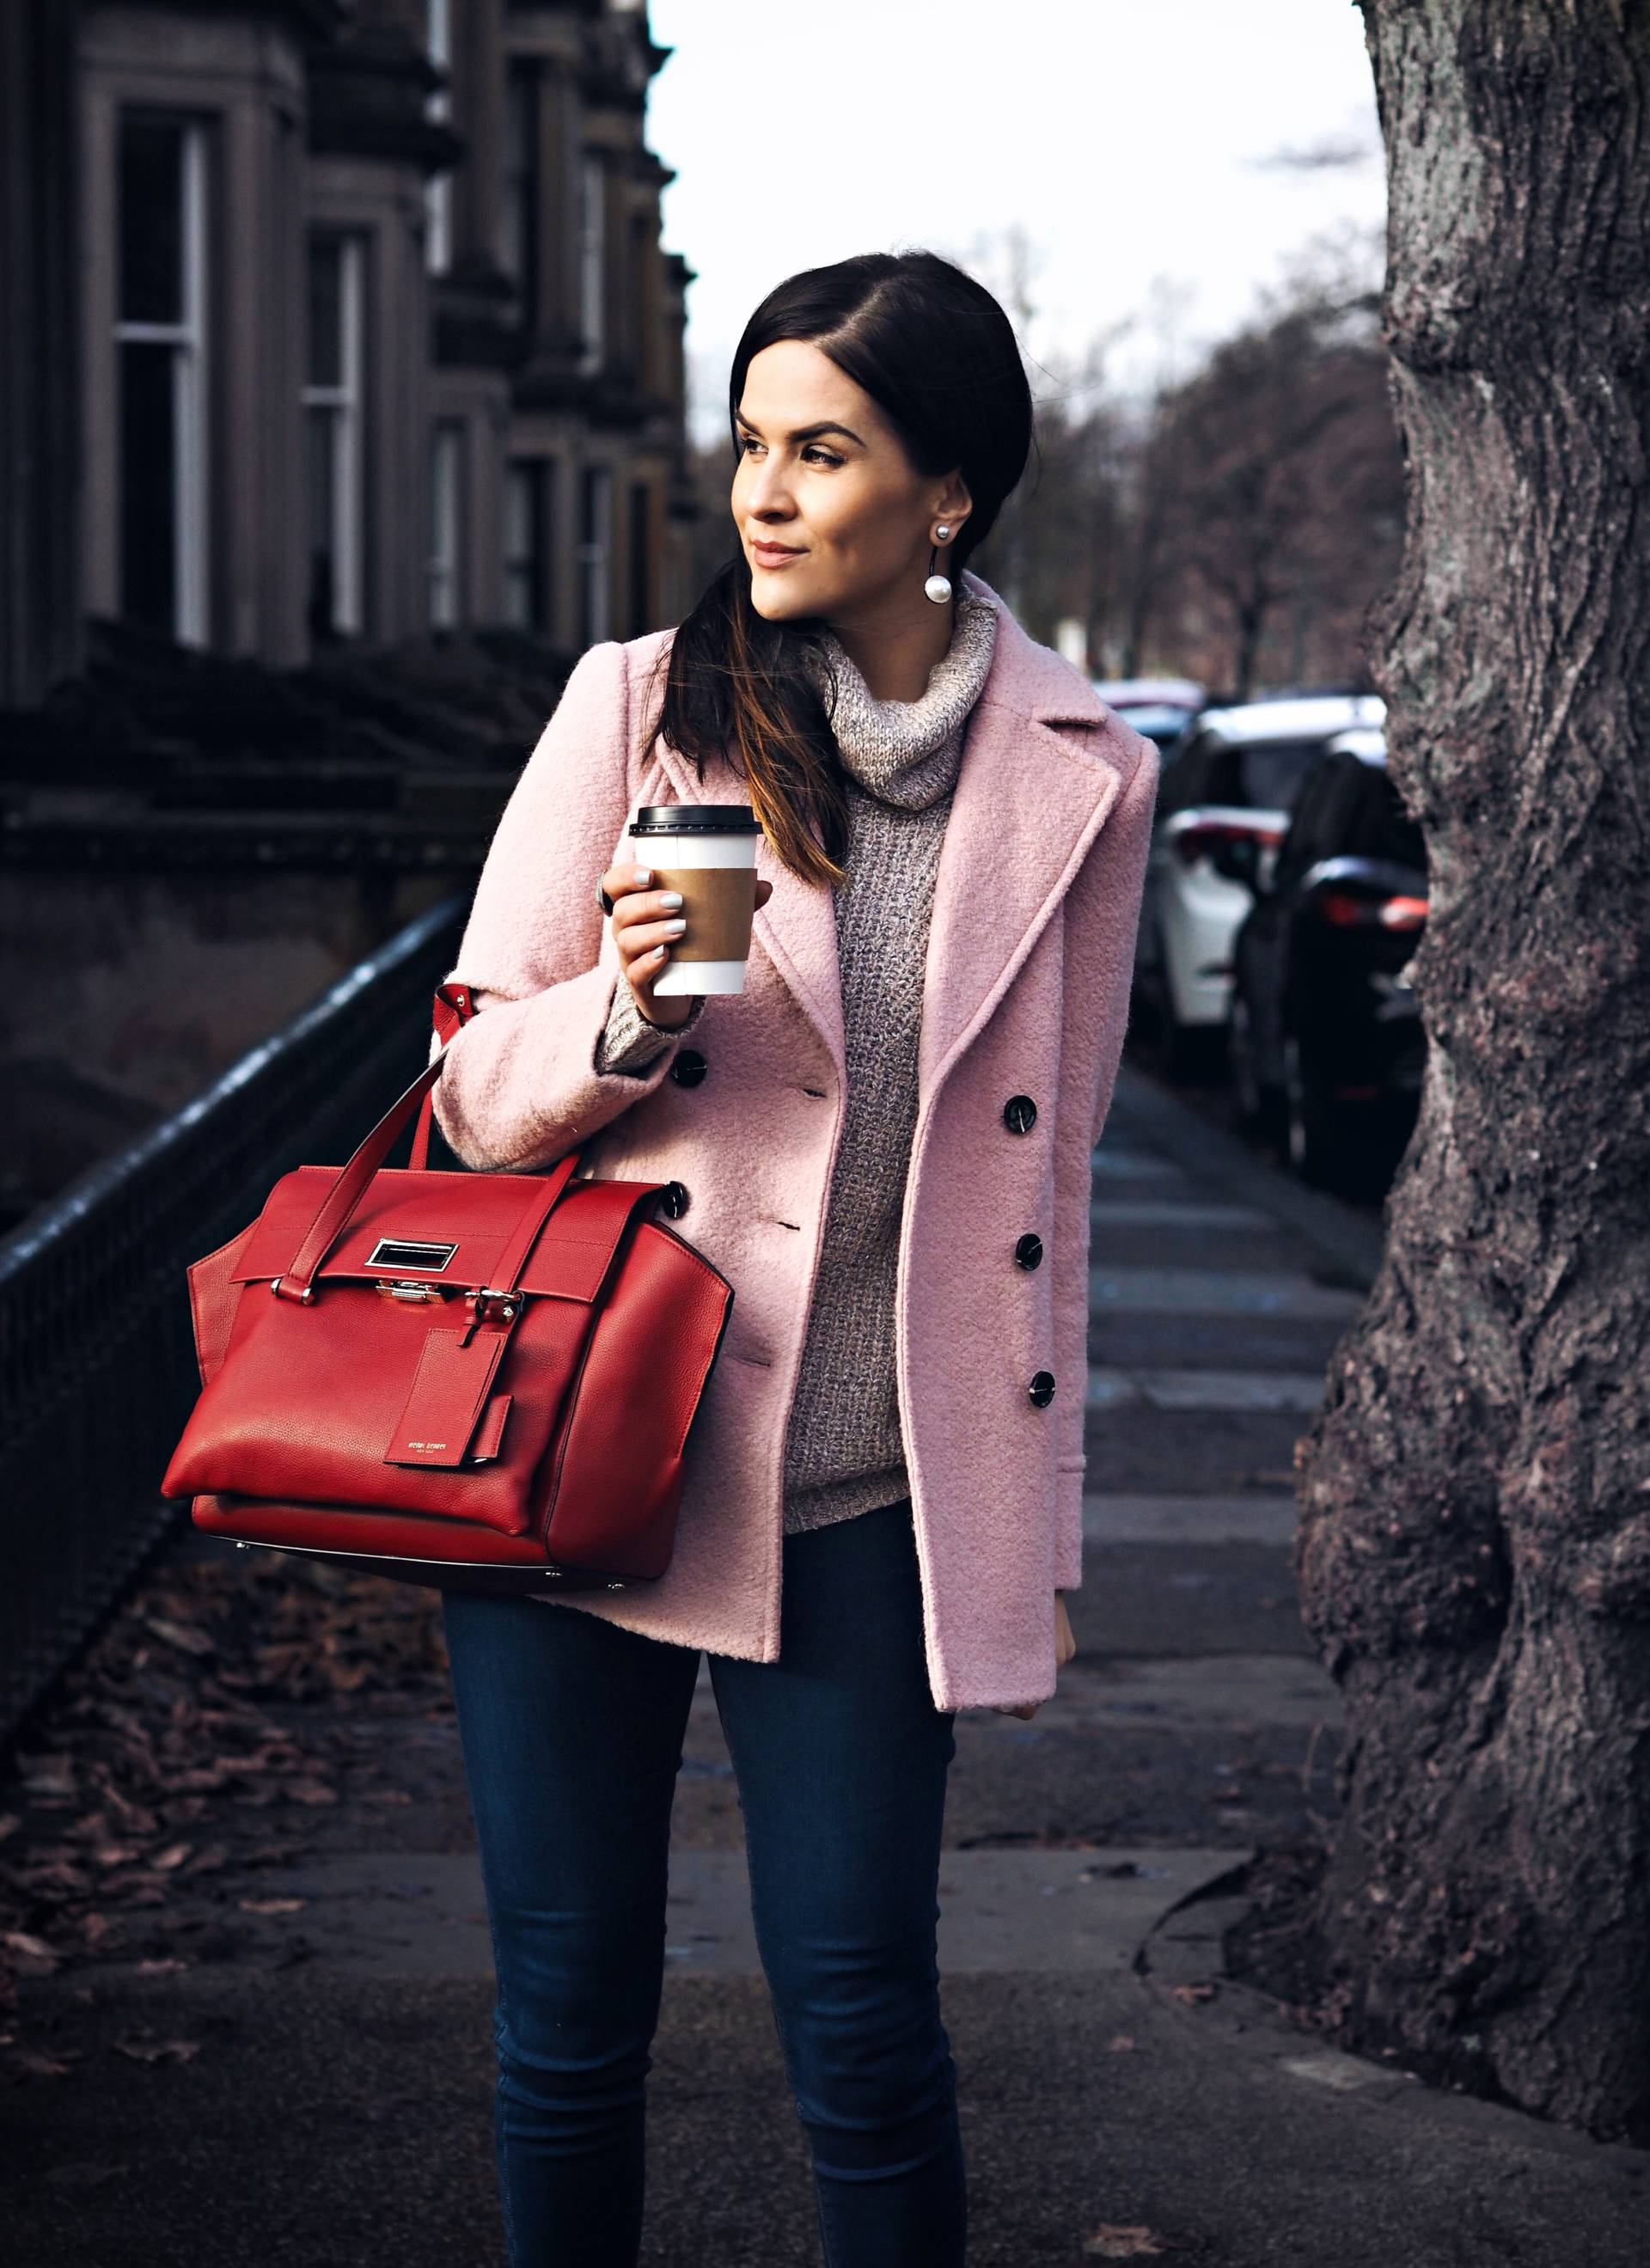 LAFOTKA M&CO WINTER COLLECTION TV AD STREET STYLE M&CO FASHION SCOTLAND